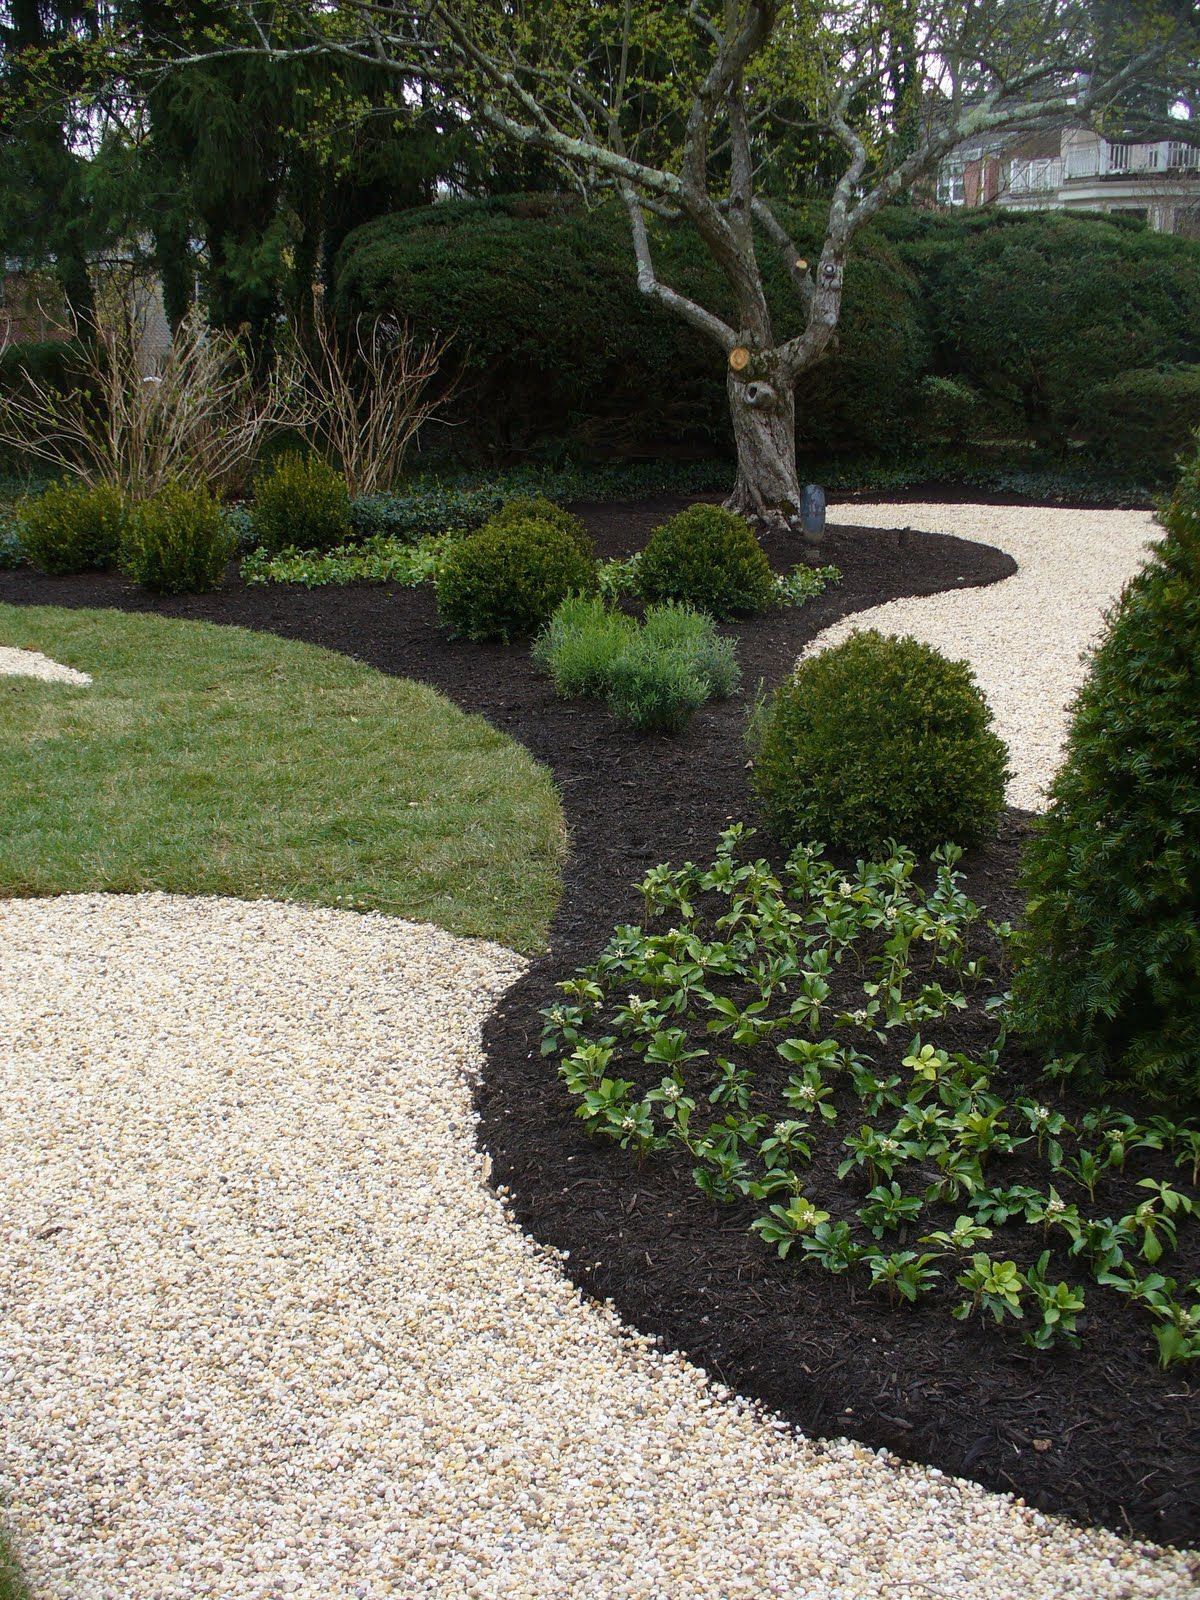 A Pairing Of Black Mulch With Light Colored Crushed Stone Makes For Beautiful Landscape Design